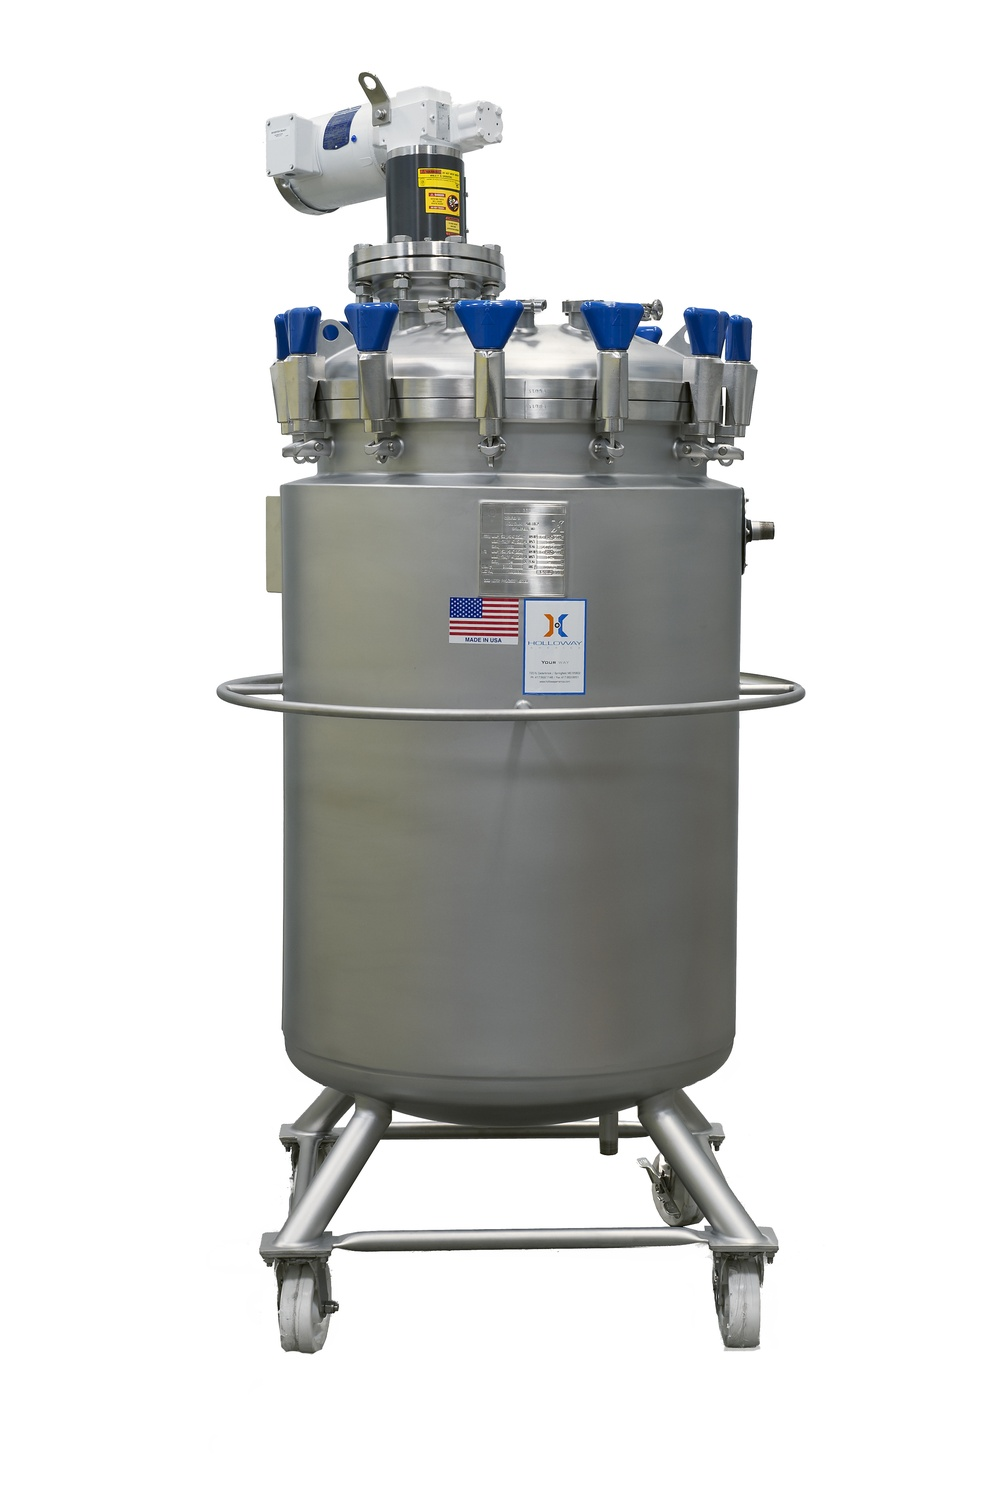 HOLLOWAY proudly crafts beverage mixing tanks like this one for the beverage industry.